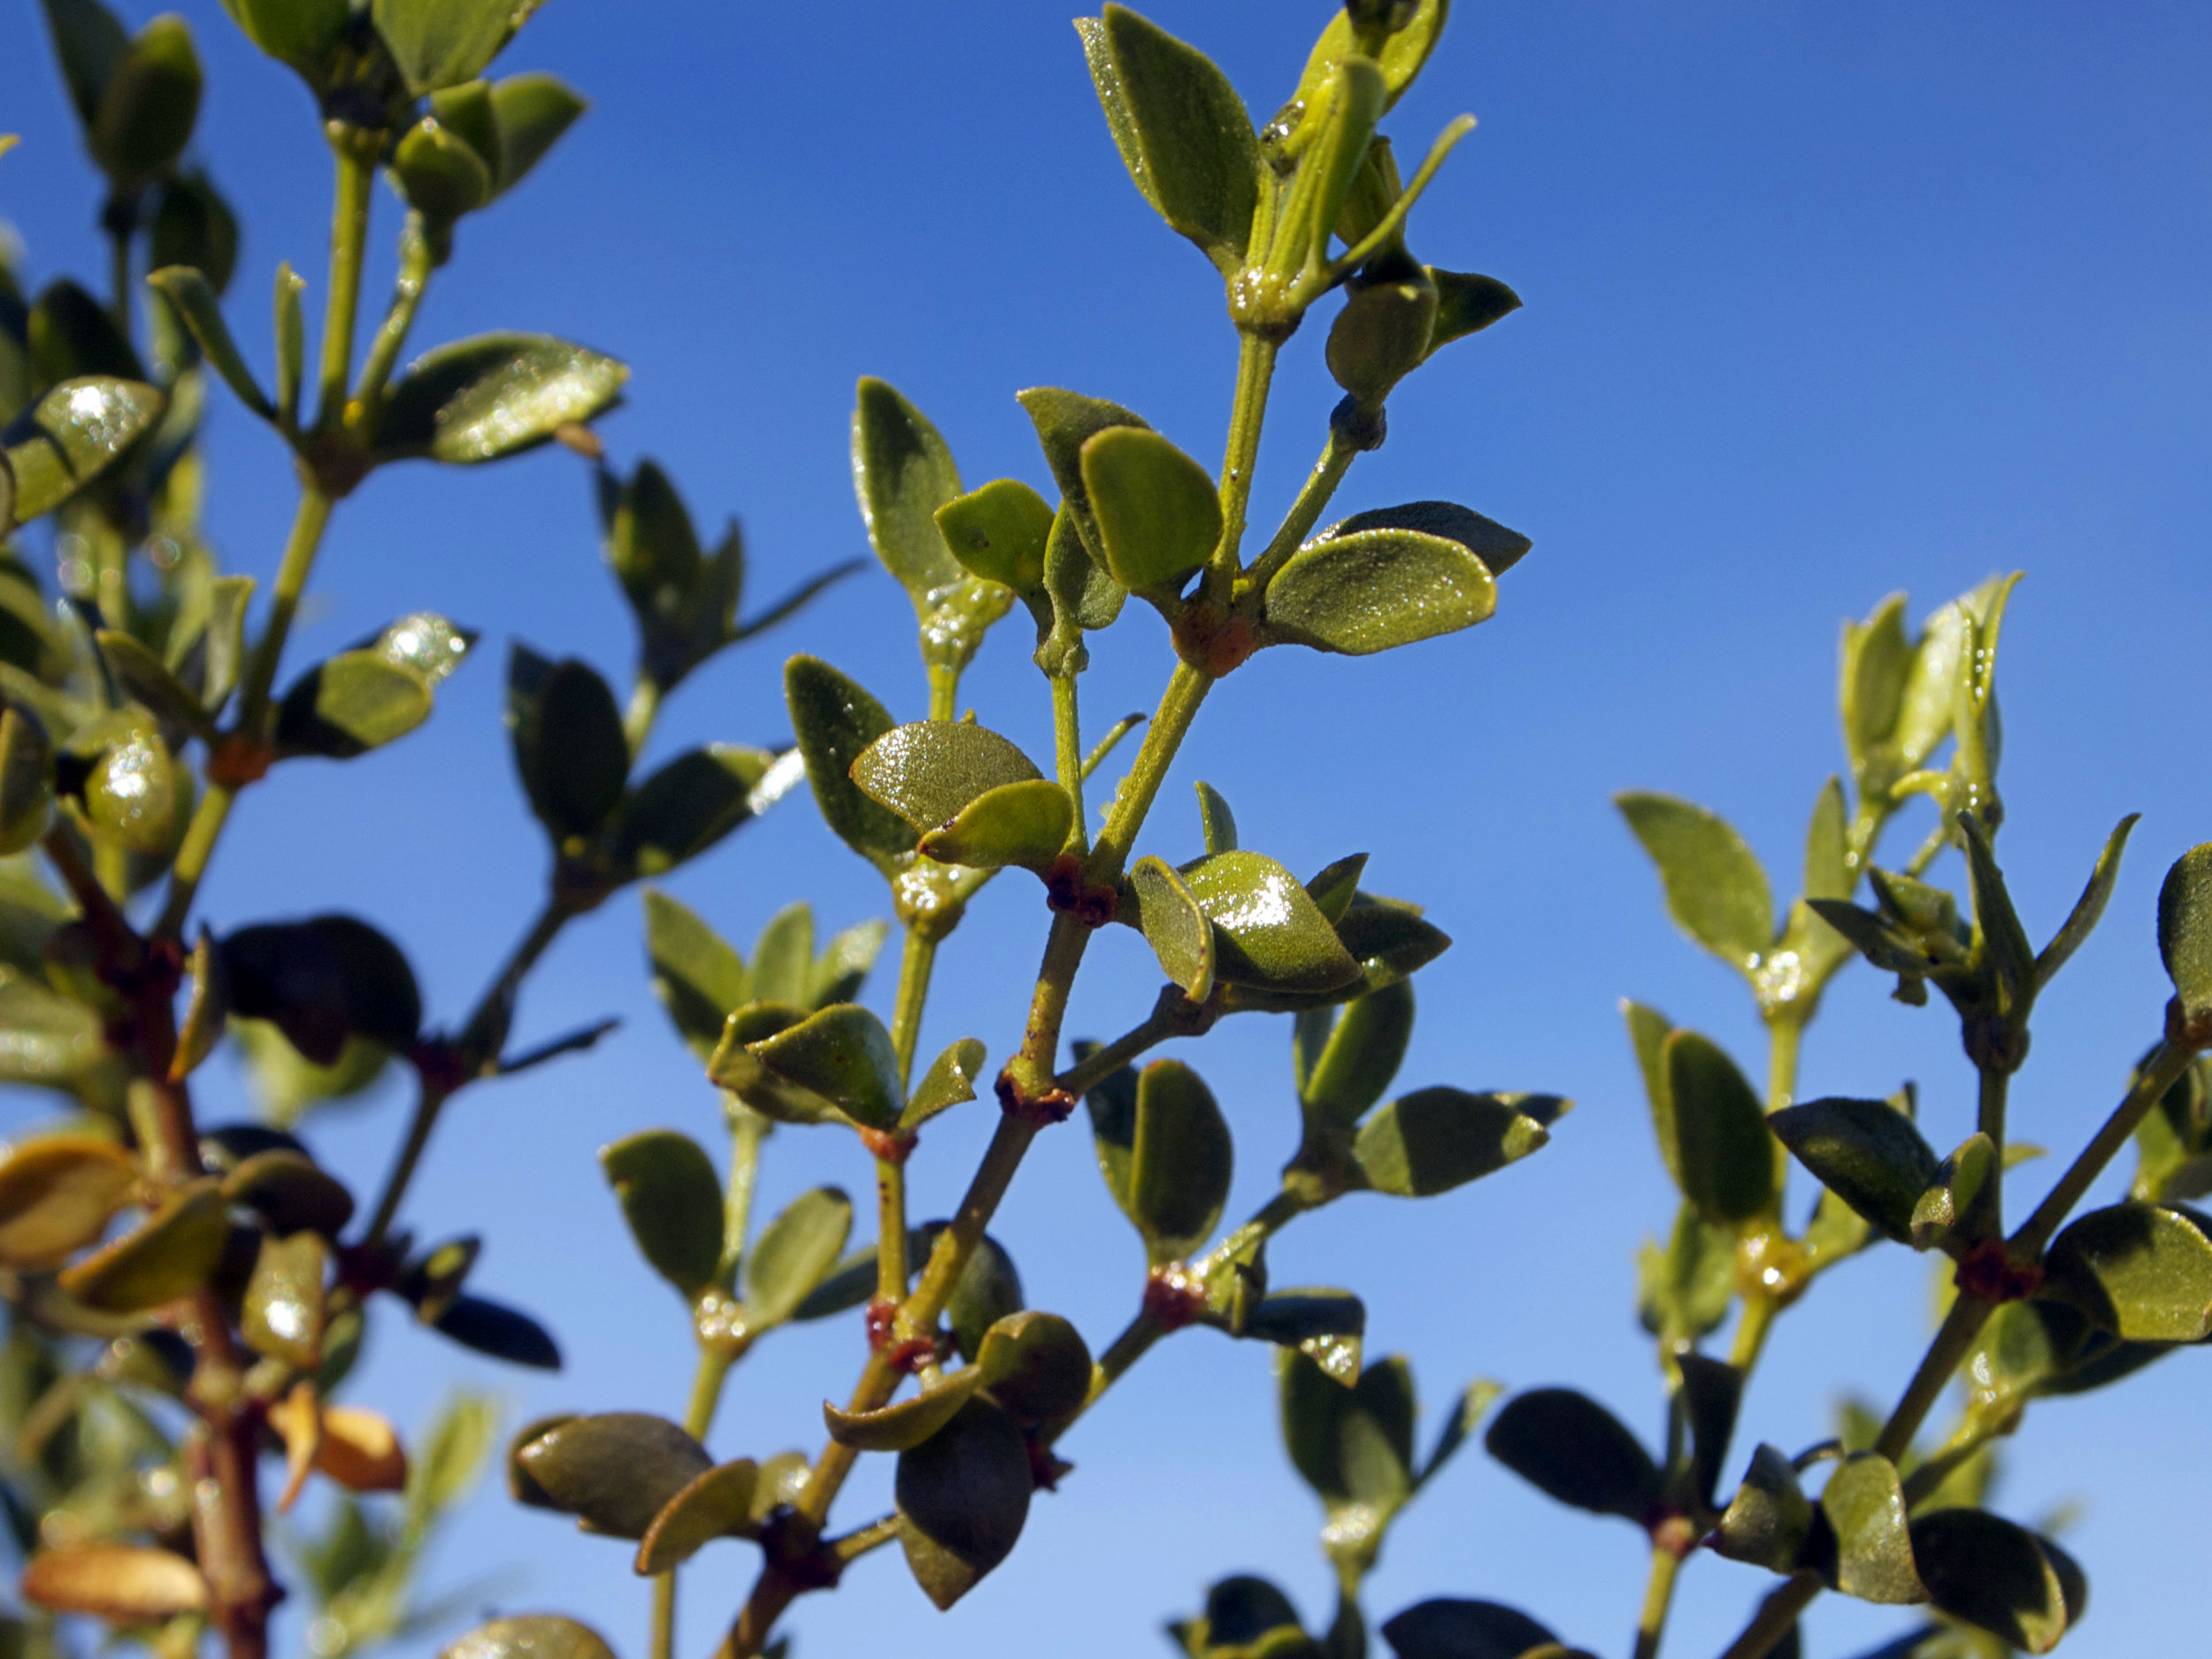 Creosote Leaves - Photo by Tim Giller